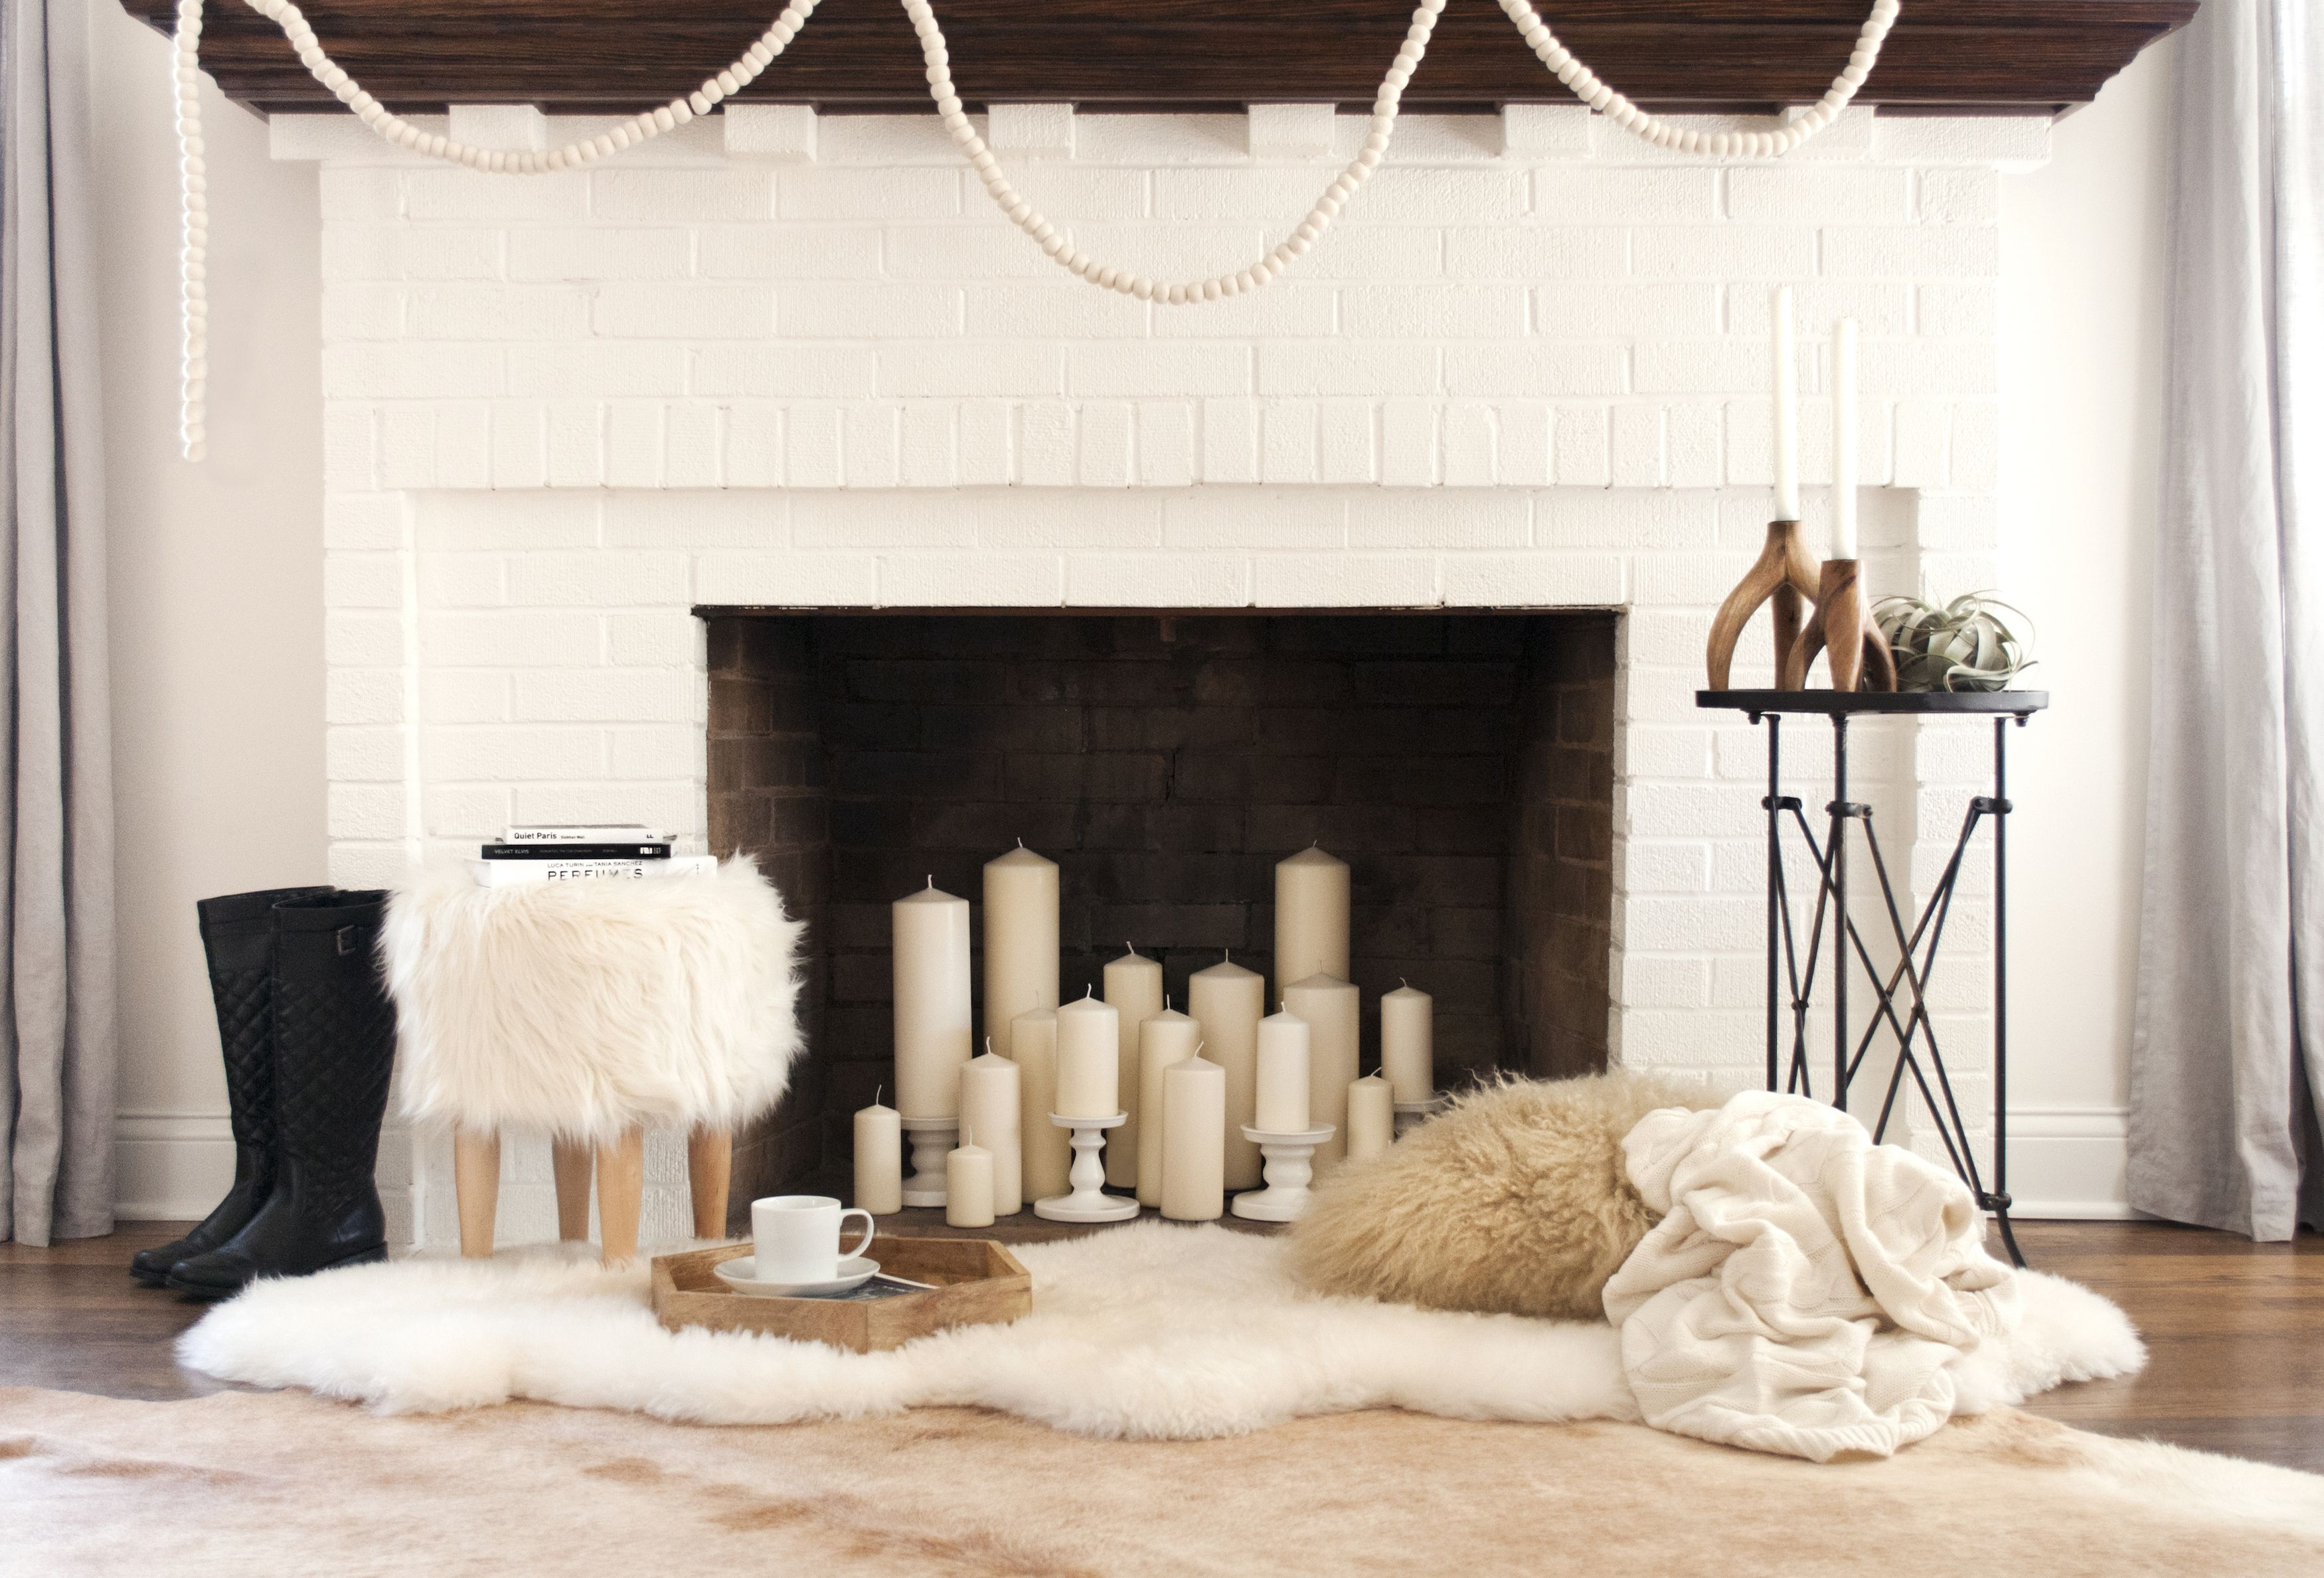 12 Decorating Ideas For Nonworking Fireplace Design Living Room Decor Ideas